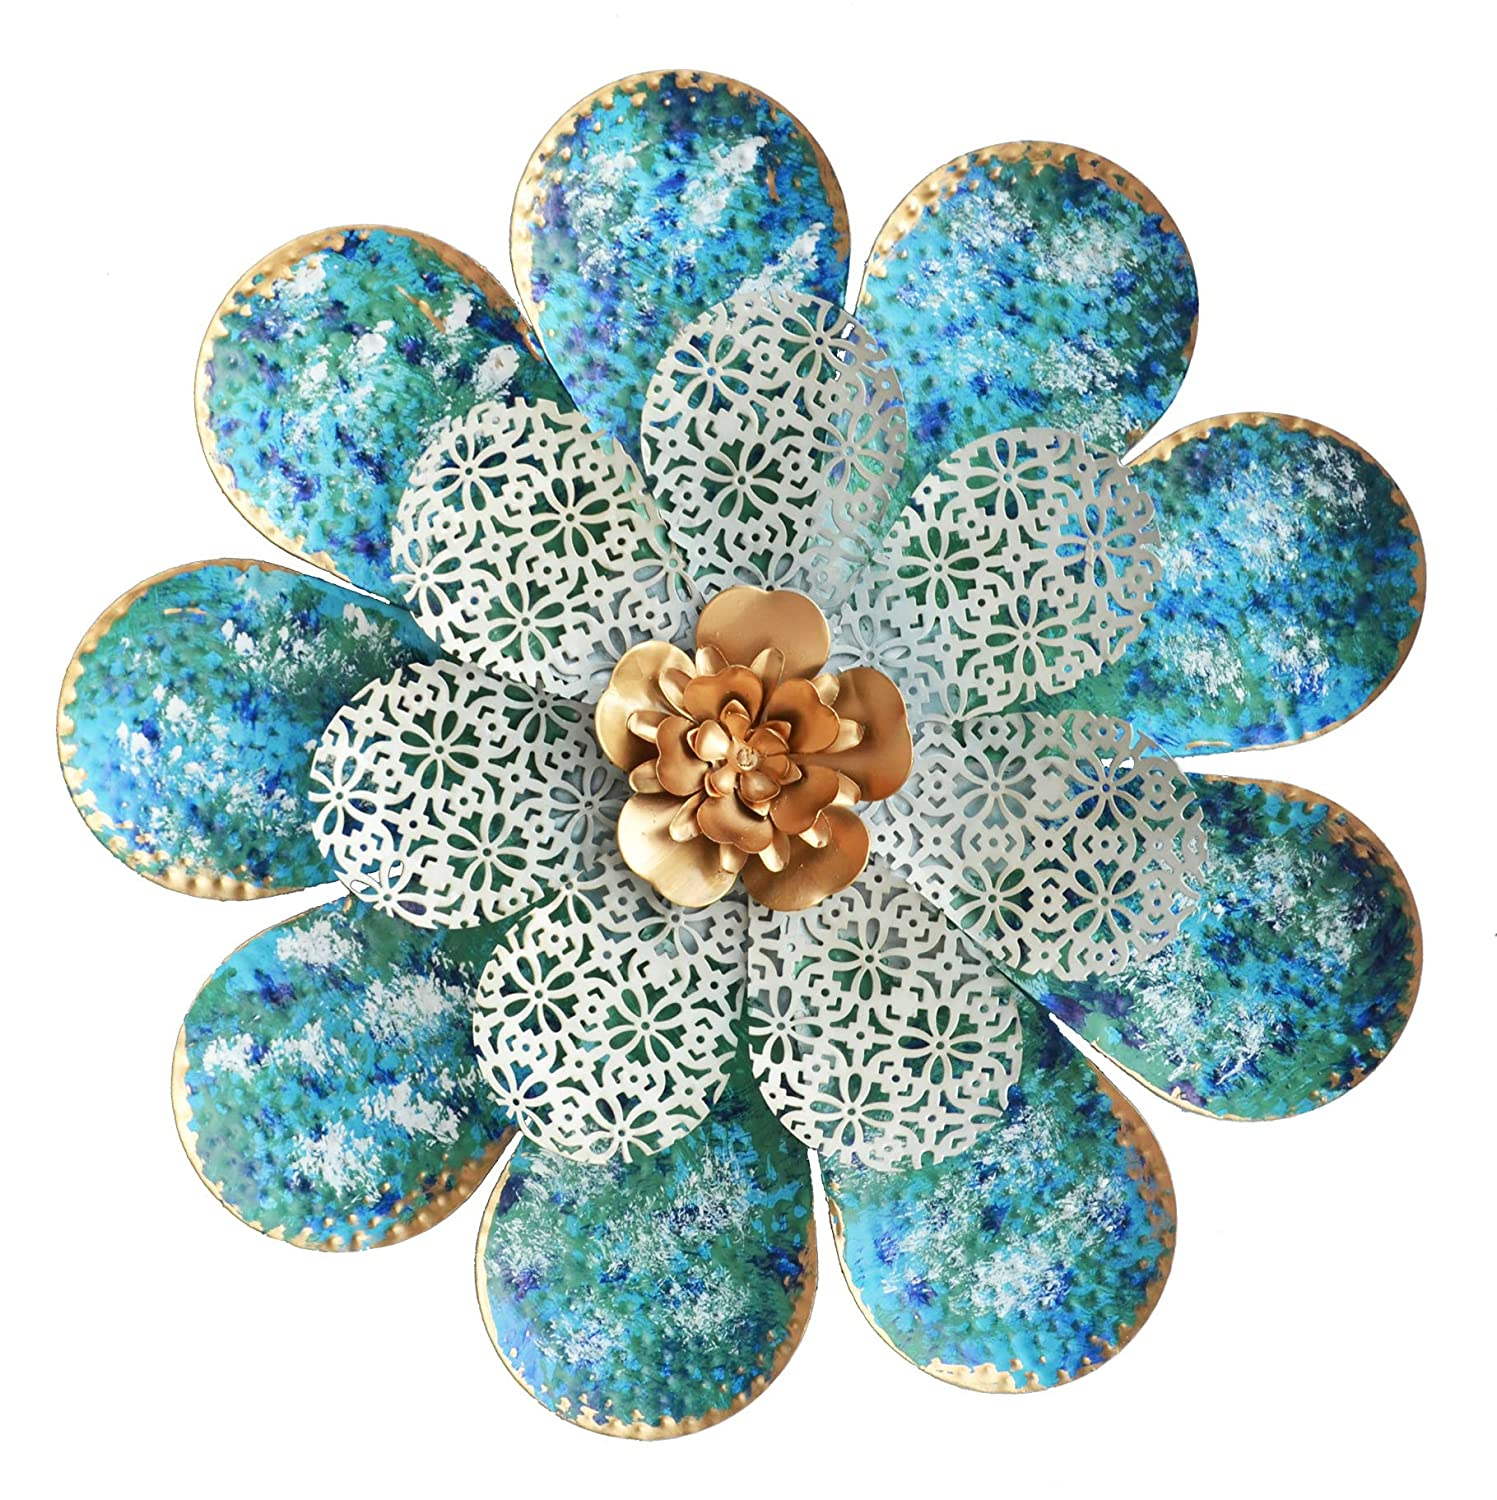 "GIFTME 5 Boho Metal Flower Wall Art Decorations Hanging for Bathdroom Livingroom Bedroom or Garden Porch Patio Wall Sculptures(13.5"" Light Blue)"